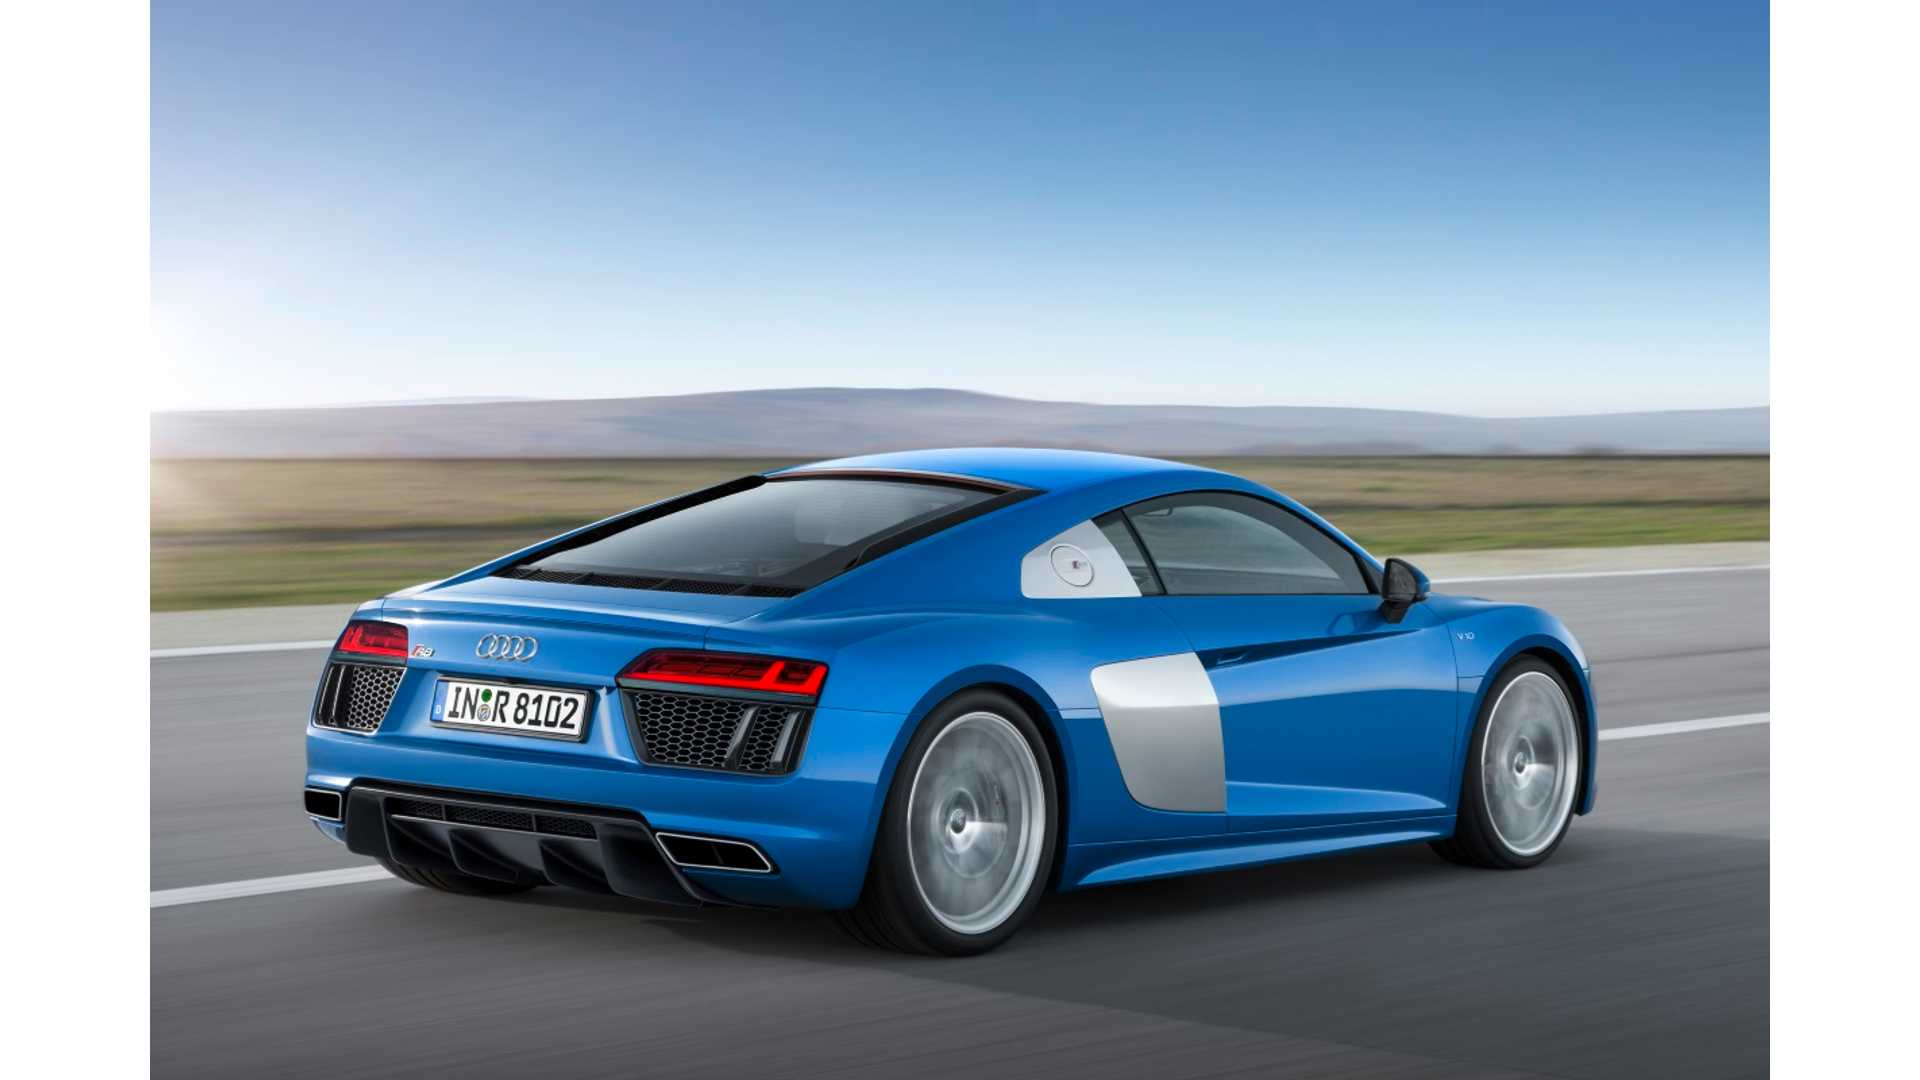 Official Audi R8 E Tron Ed With 92 Kwh Battery Range Listed At 280 Miles